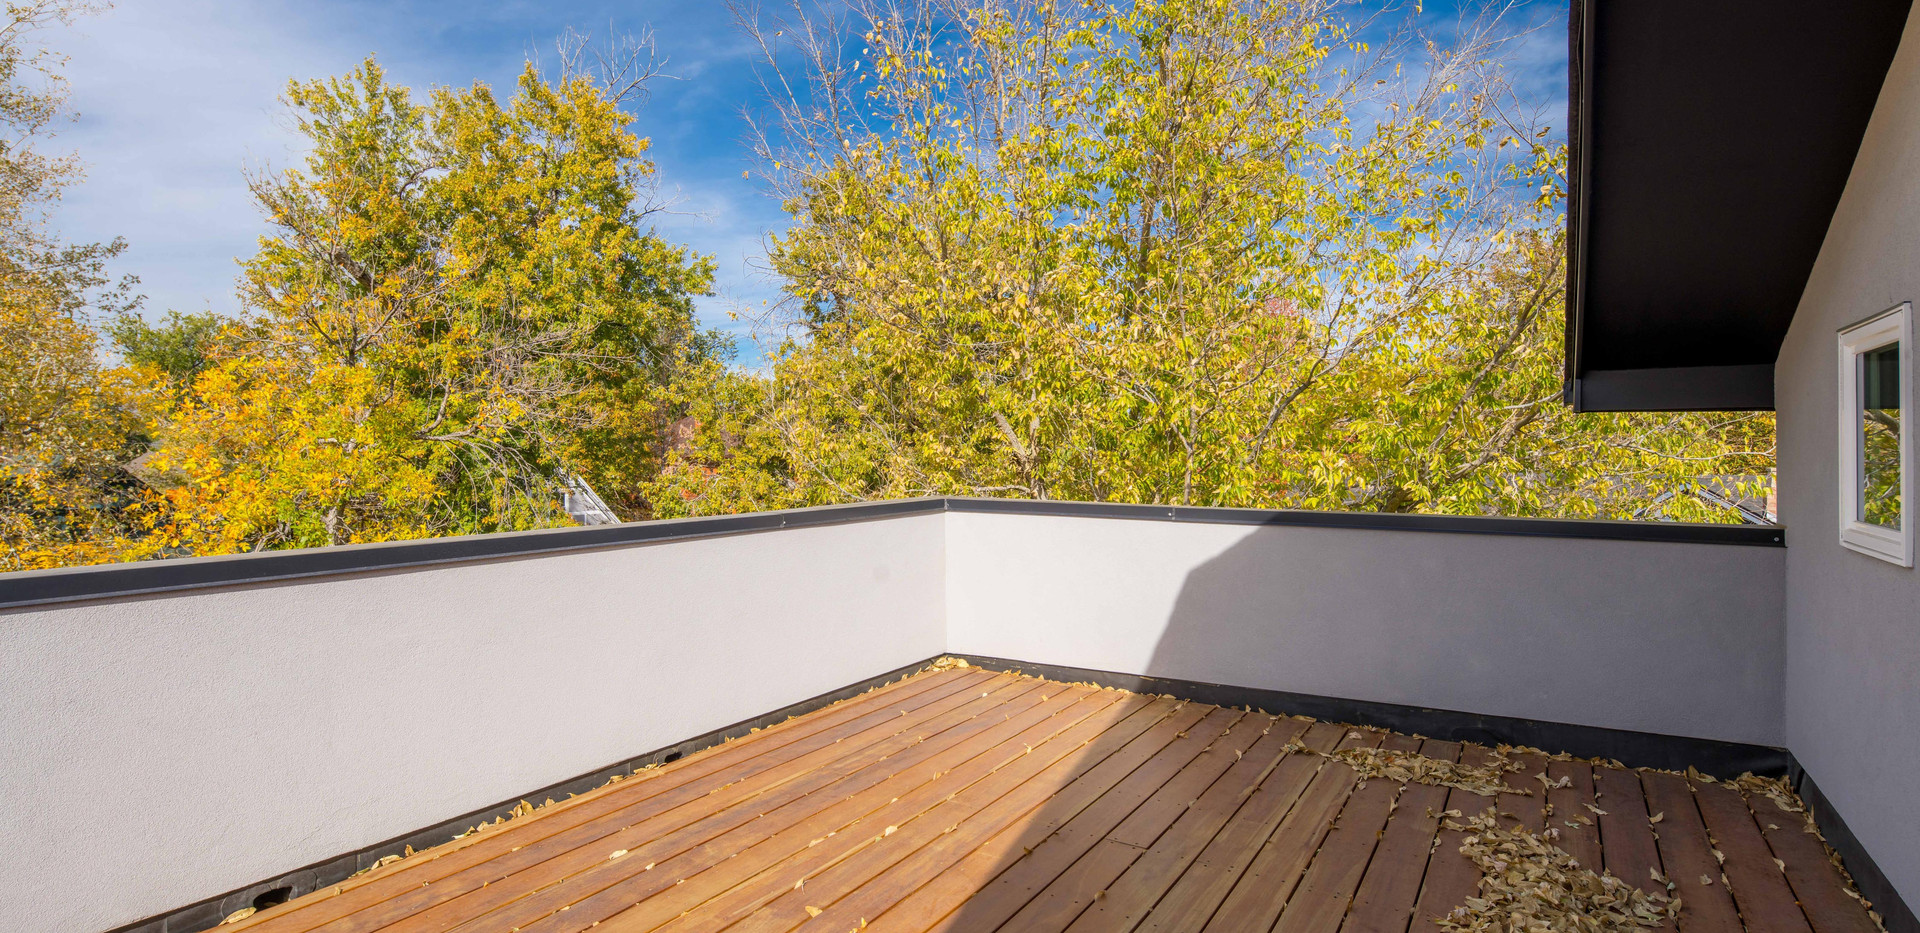 922 S Clarkson St-print-045-050-Rooftop